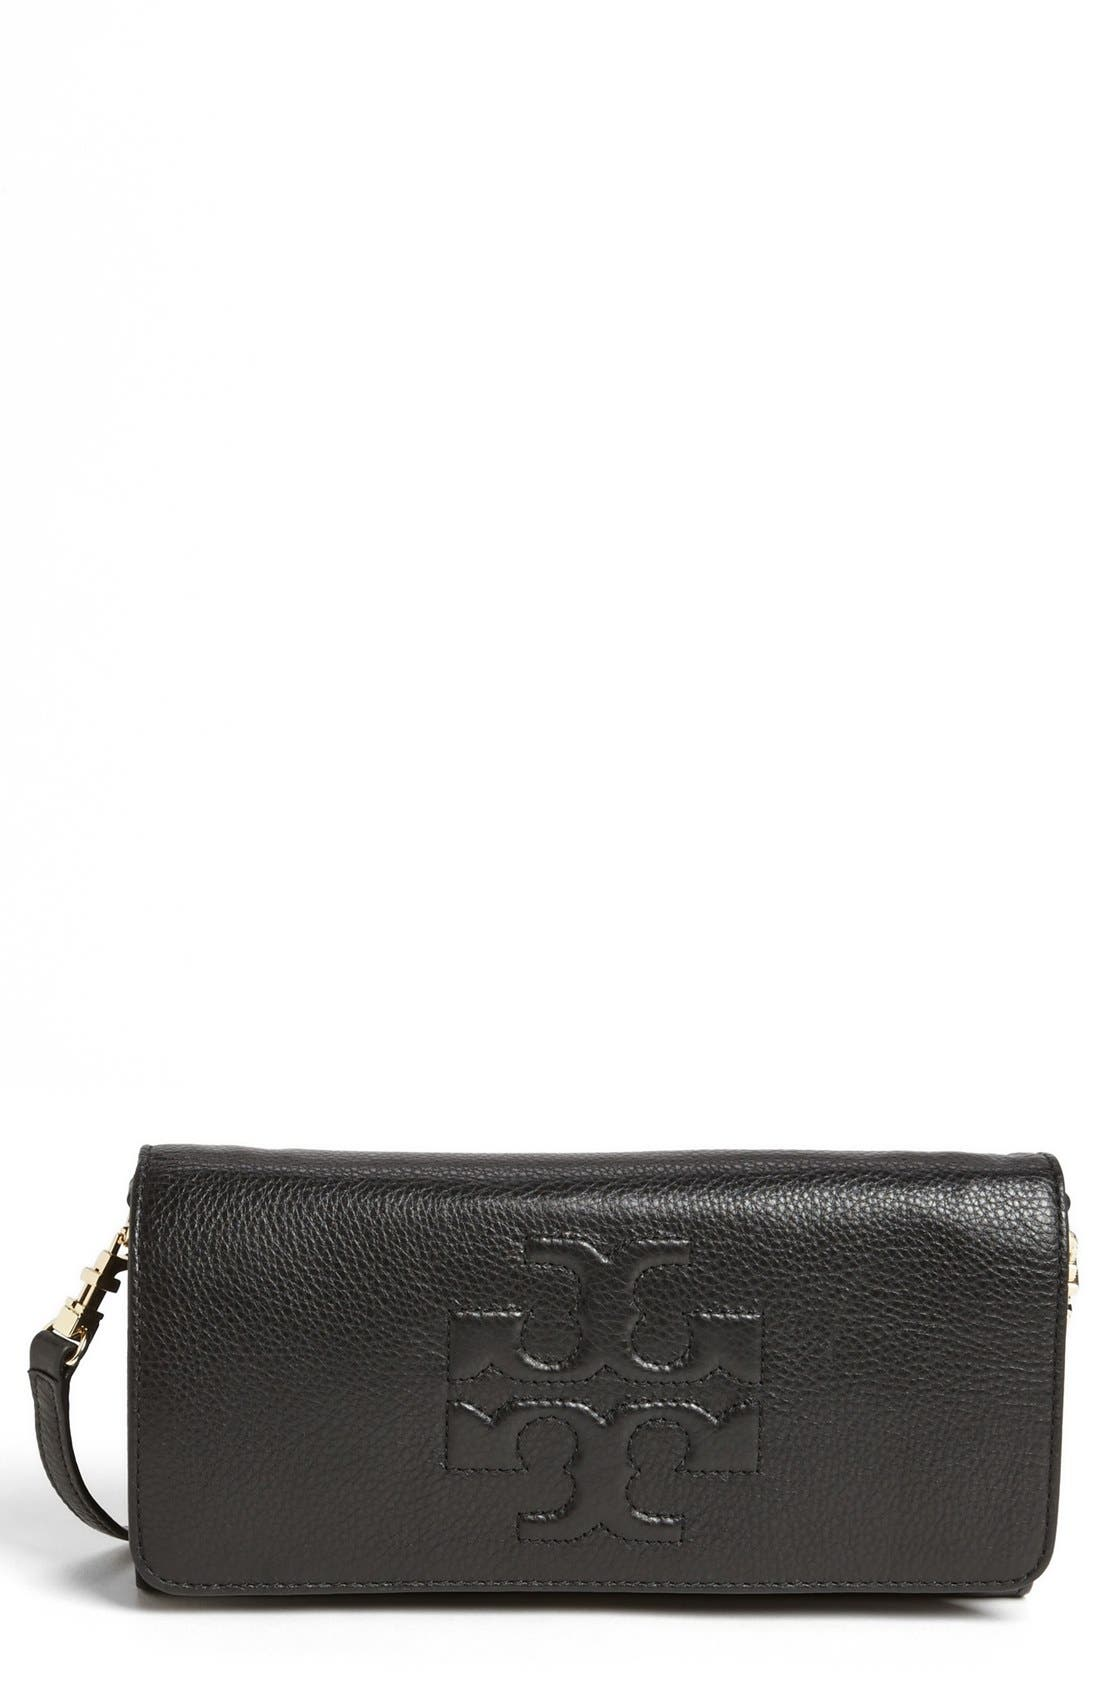 Main Image - Tory Burch 'Thea' Foldover Crossbody Clutch